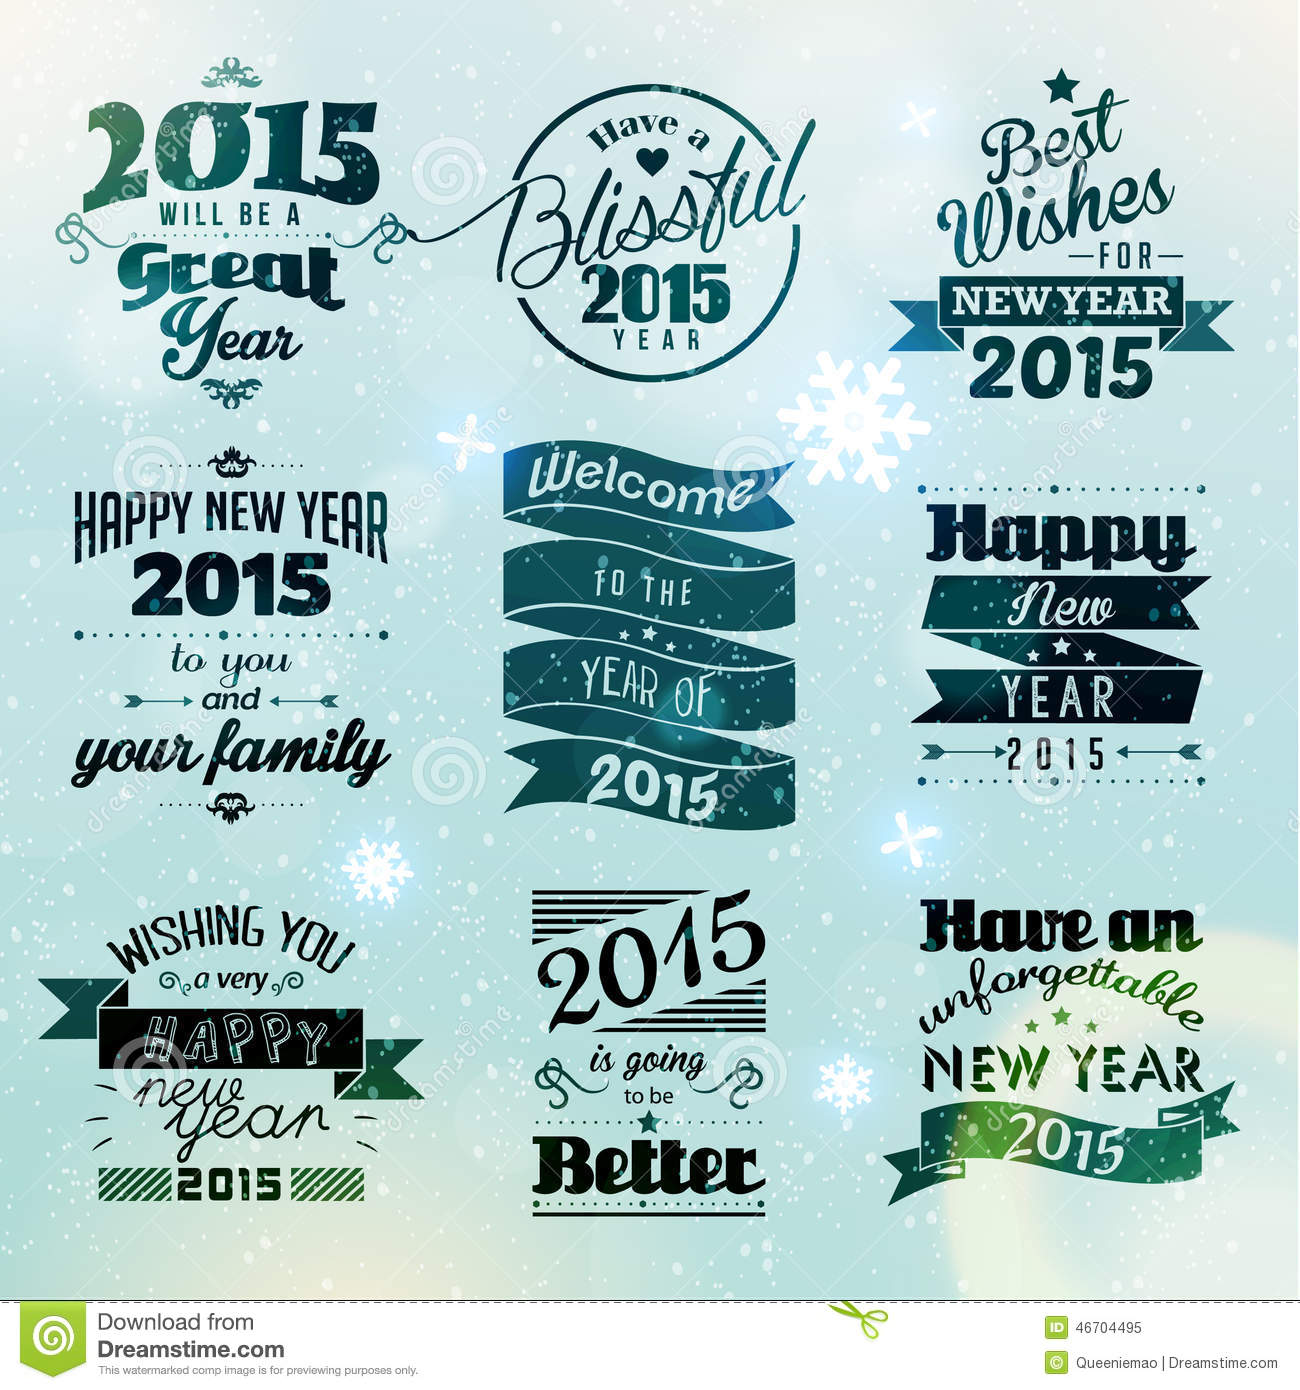 Happy new year 2015 season greetings stock vector illustration of happy new year 2015 season greetings quote vector design m4hsunfo